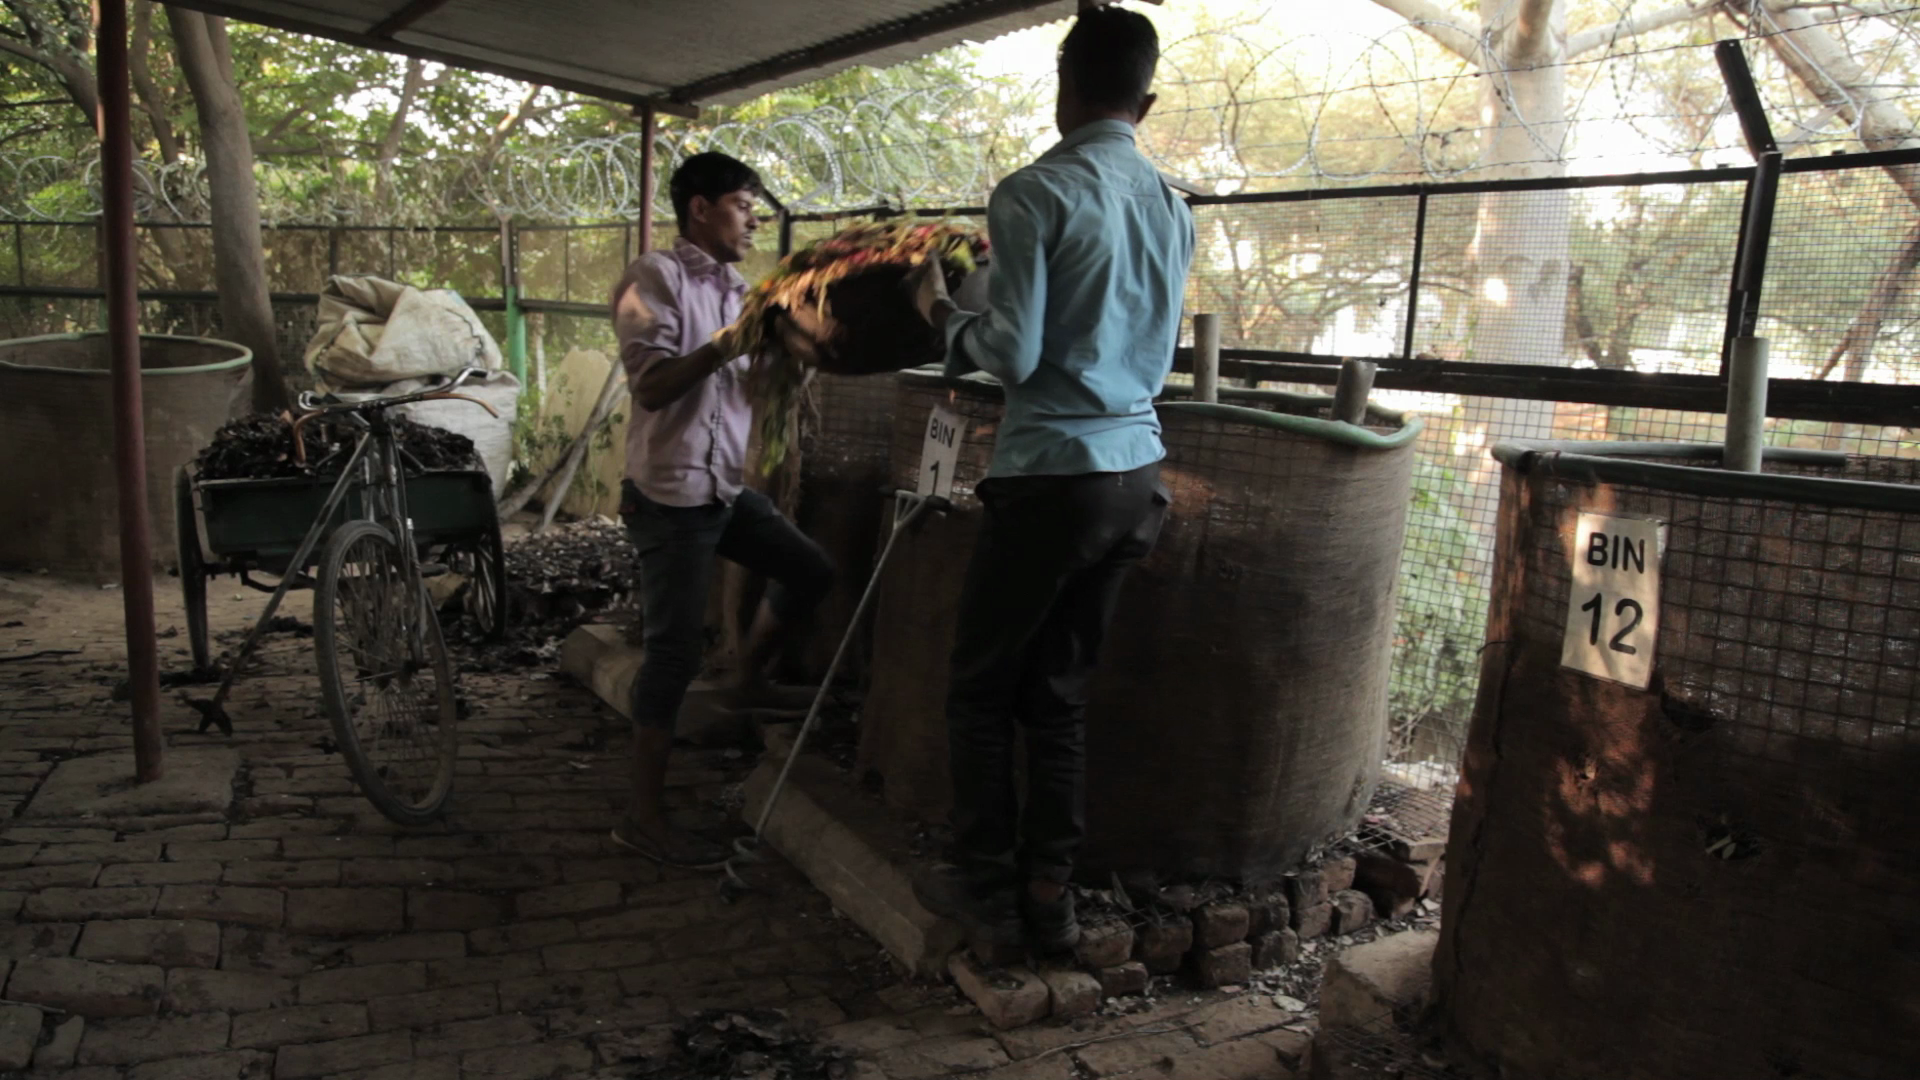 Two housekeeping boys have been trained to carry out the operations at the composting site in 2 hours